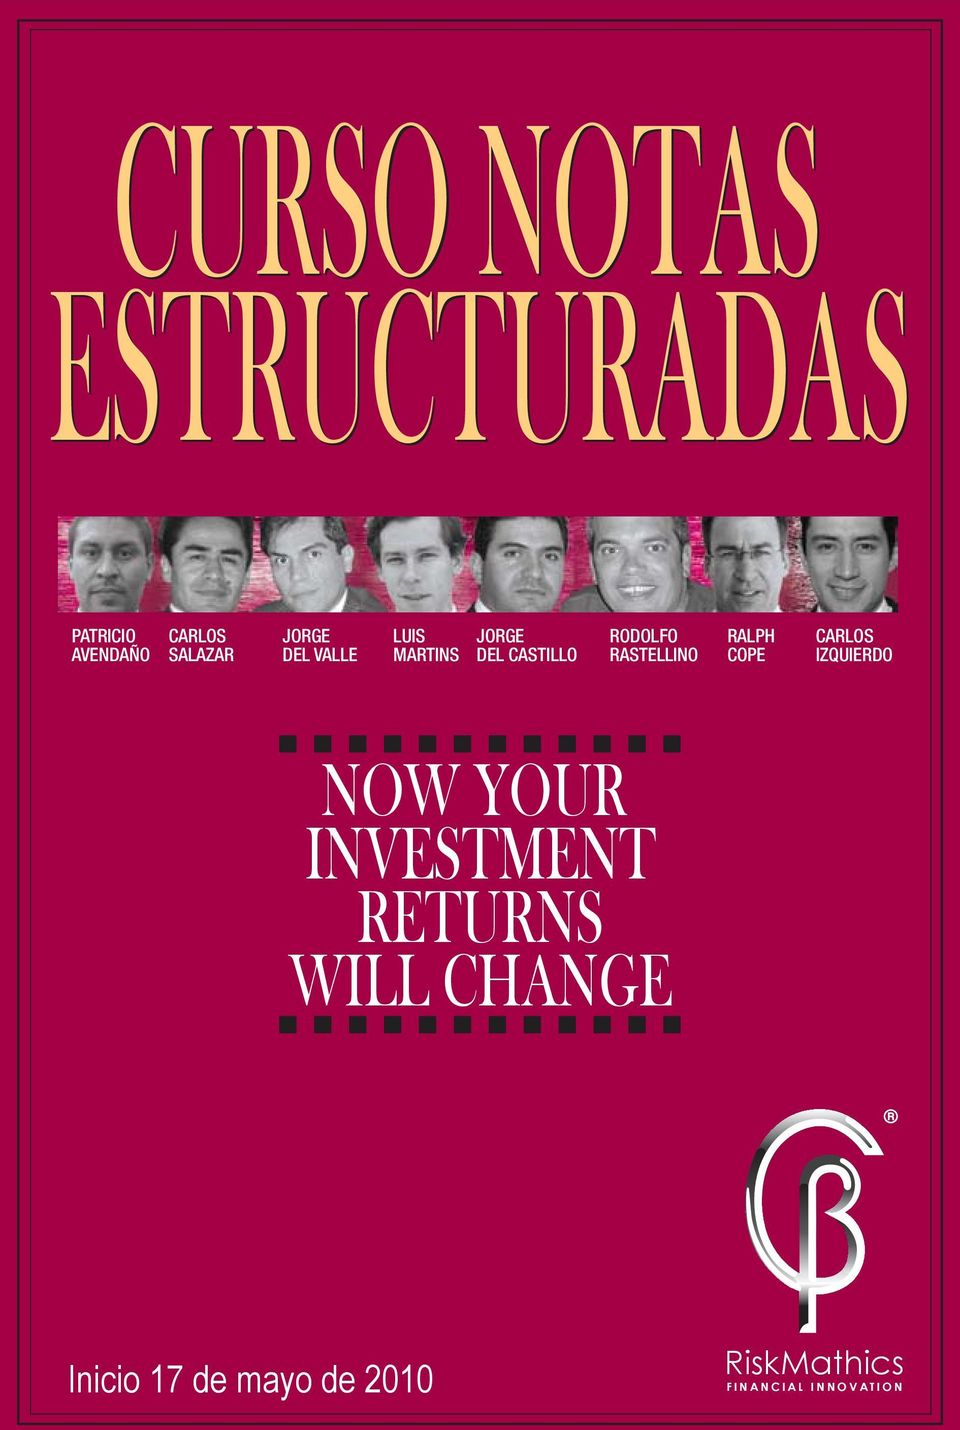 RASTELLINO RALPH COPE CARLOS IZQUIERDO NOW YOUR INVESTMENT